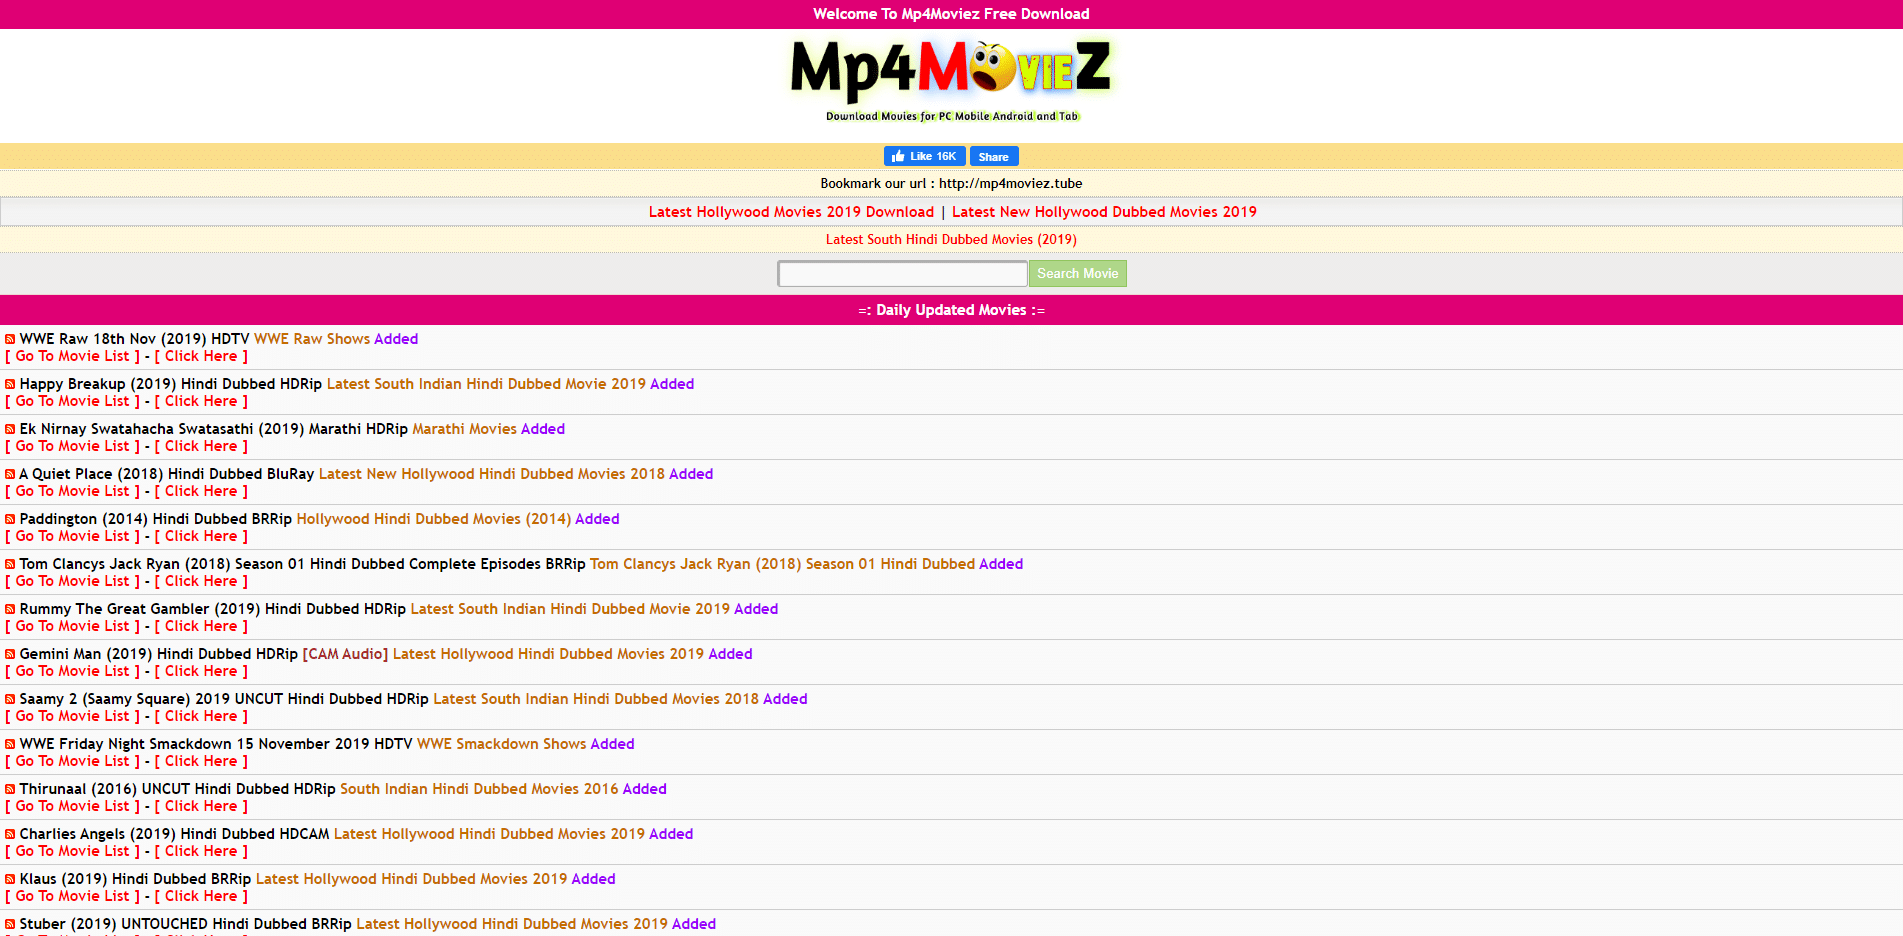 mp4moviez website